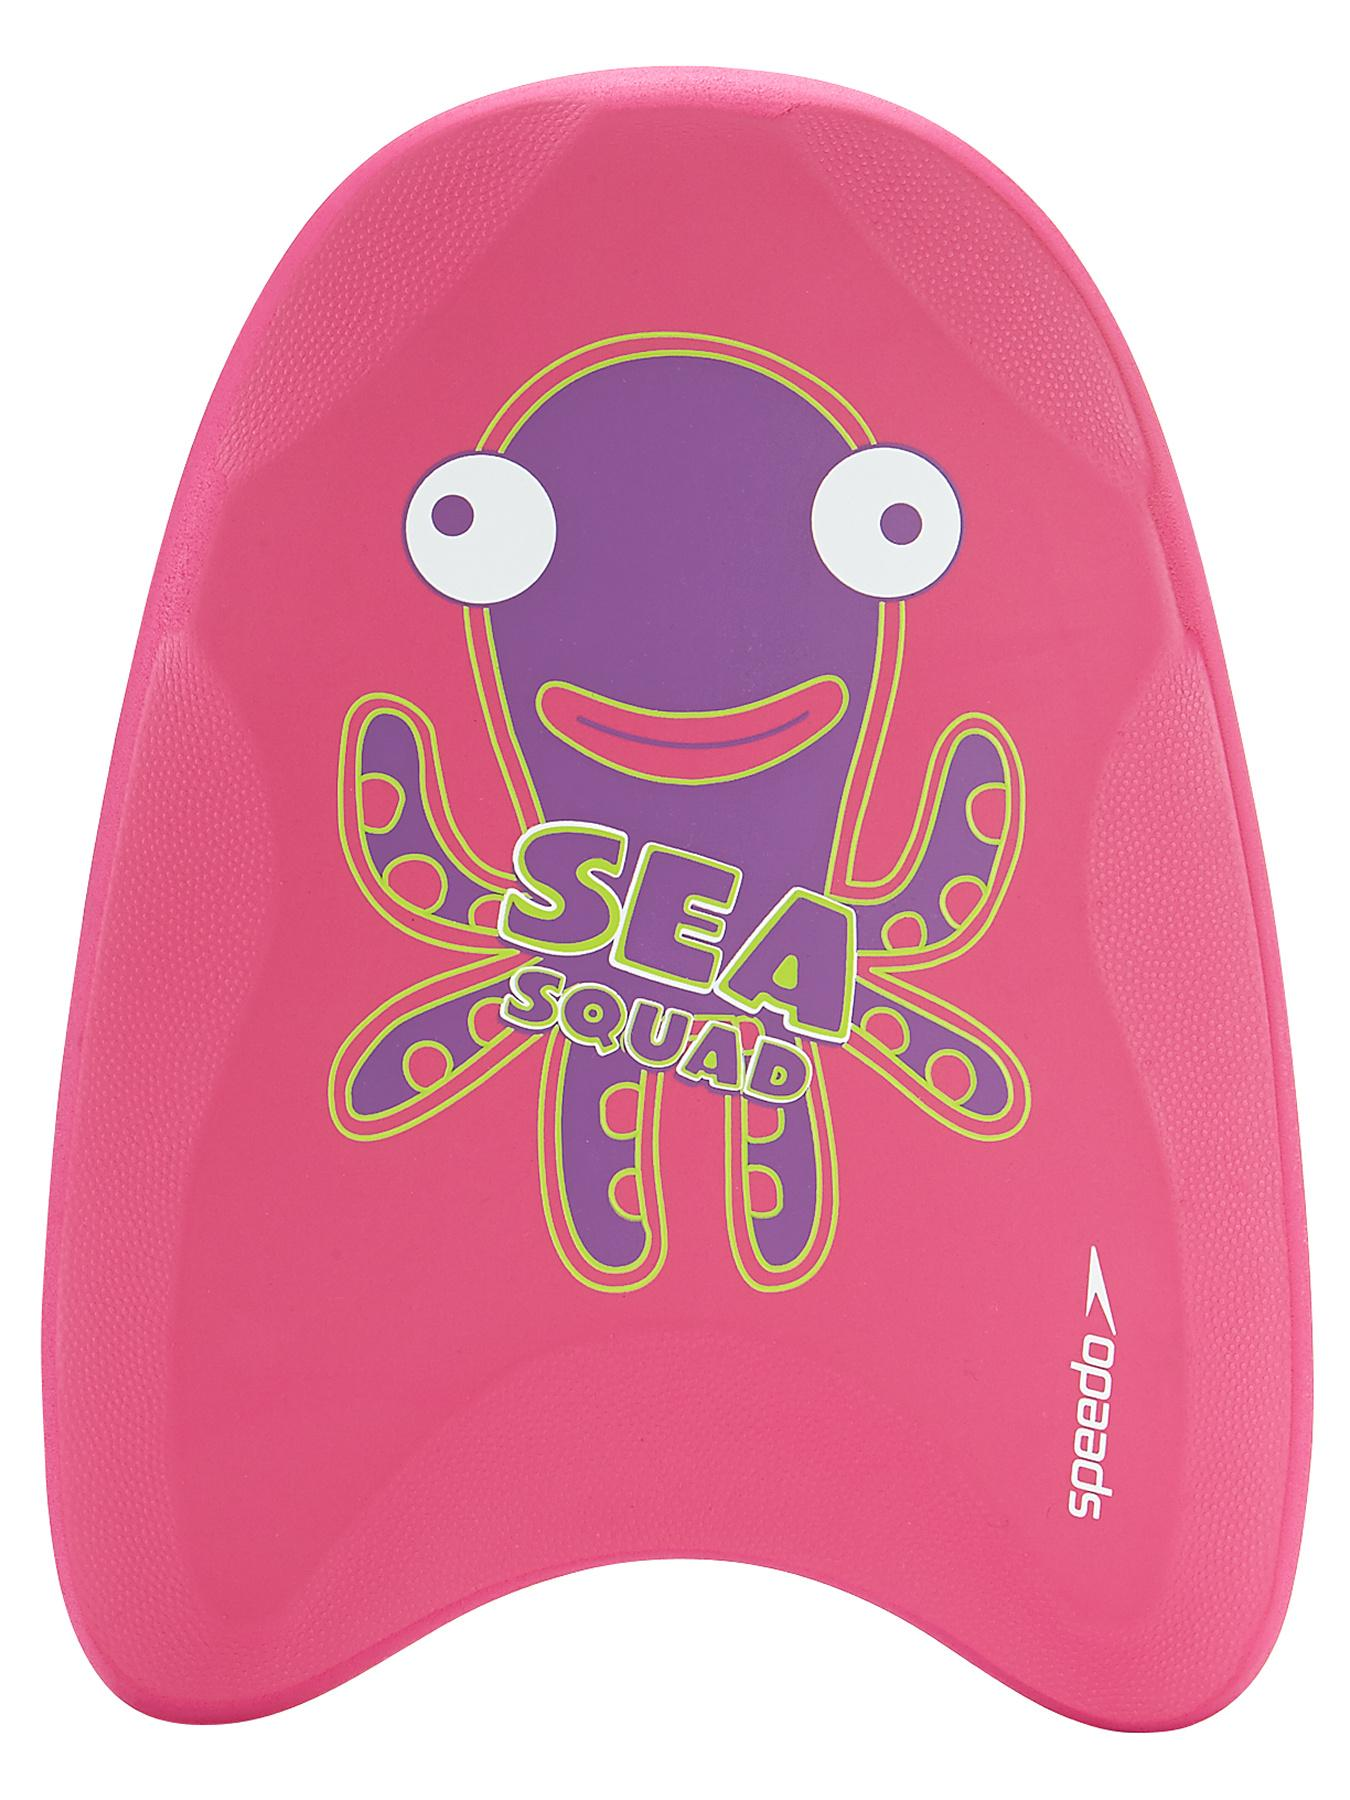 Speedo Girl Sea Squad Kick Board - Pink, Pink